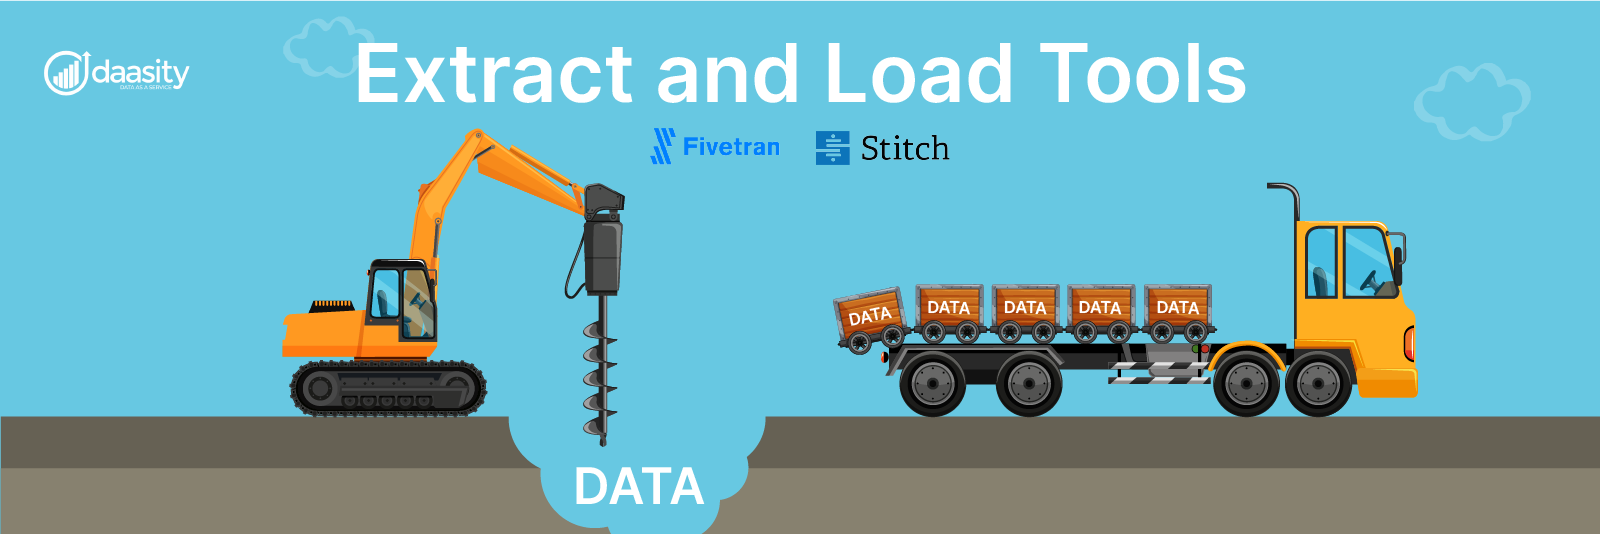 Extract and Load Tools (Fivetran, Stitch)